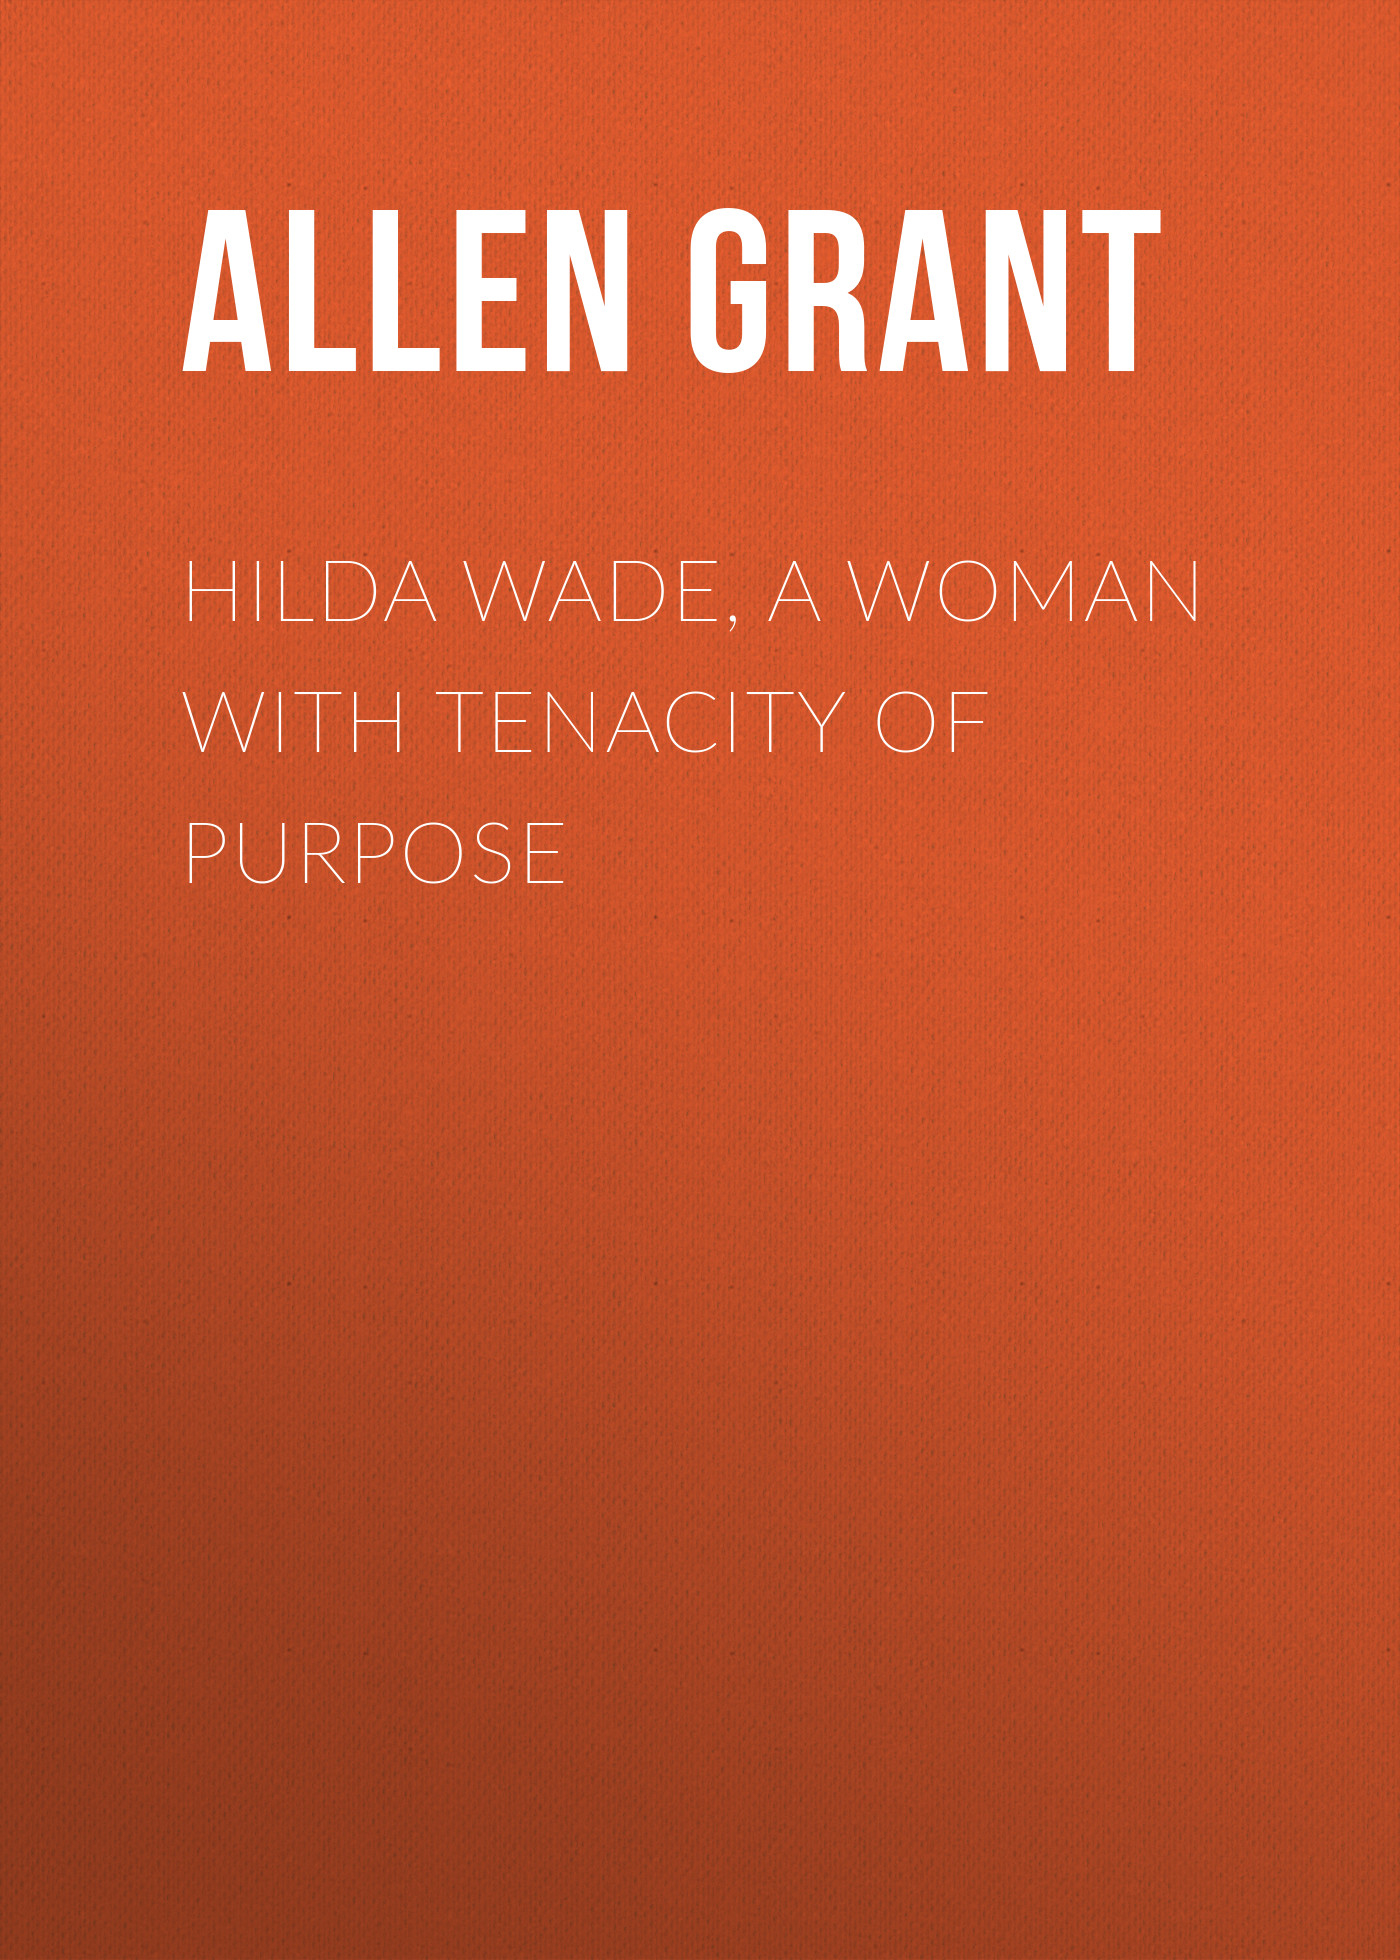 лучшая цена Allen Grant Hilda Wade, a Woman with Tenacity of Purpose